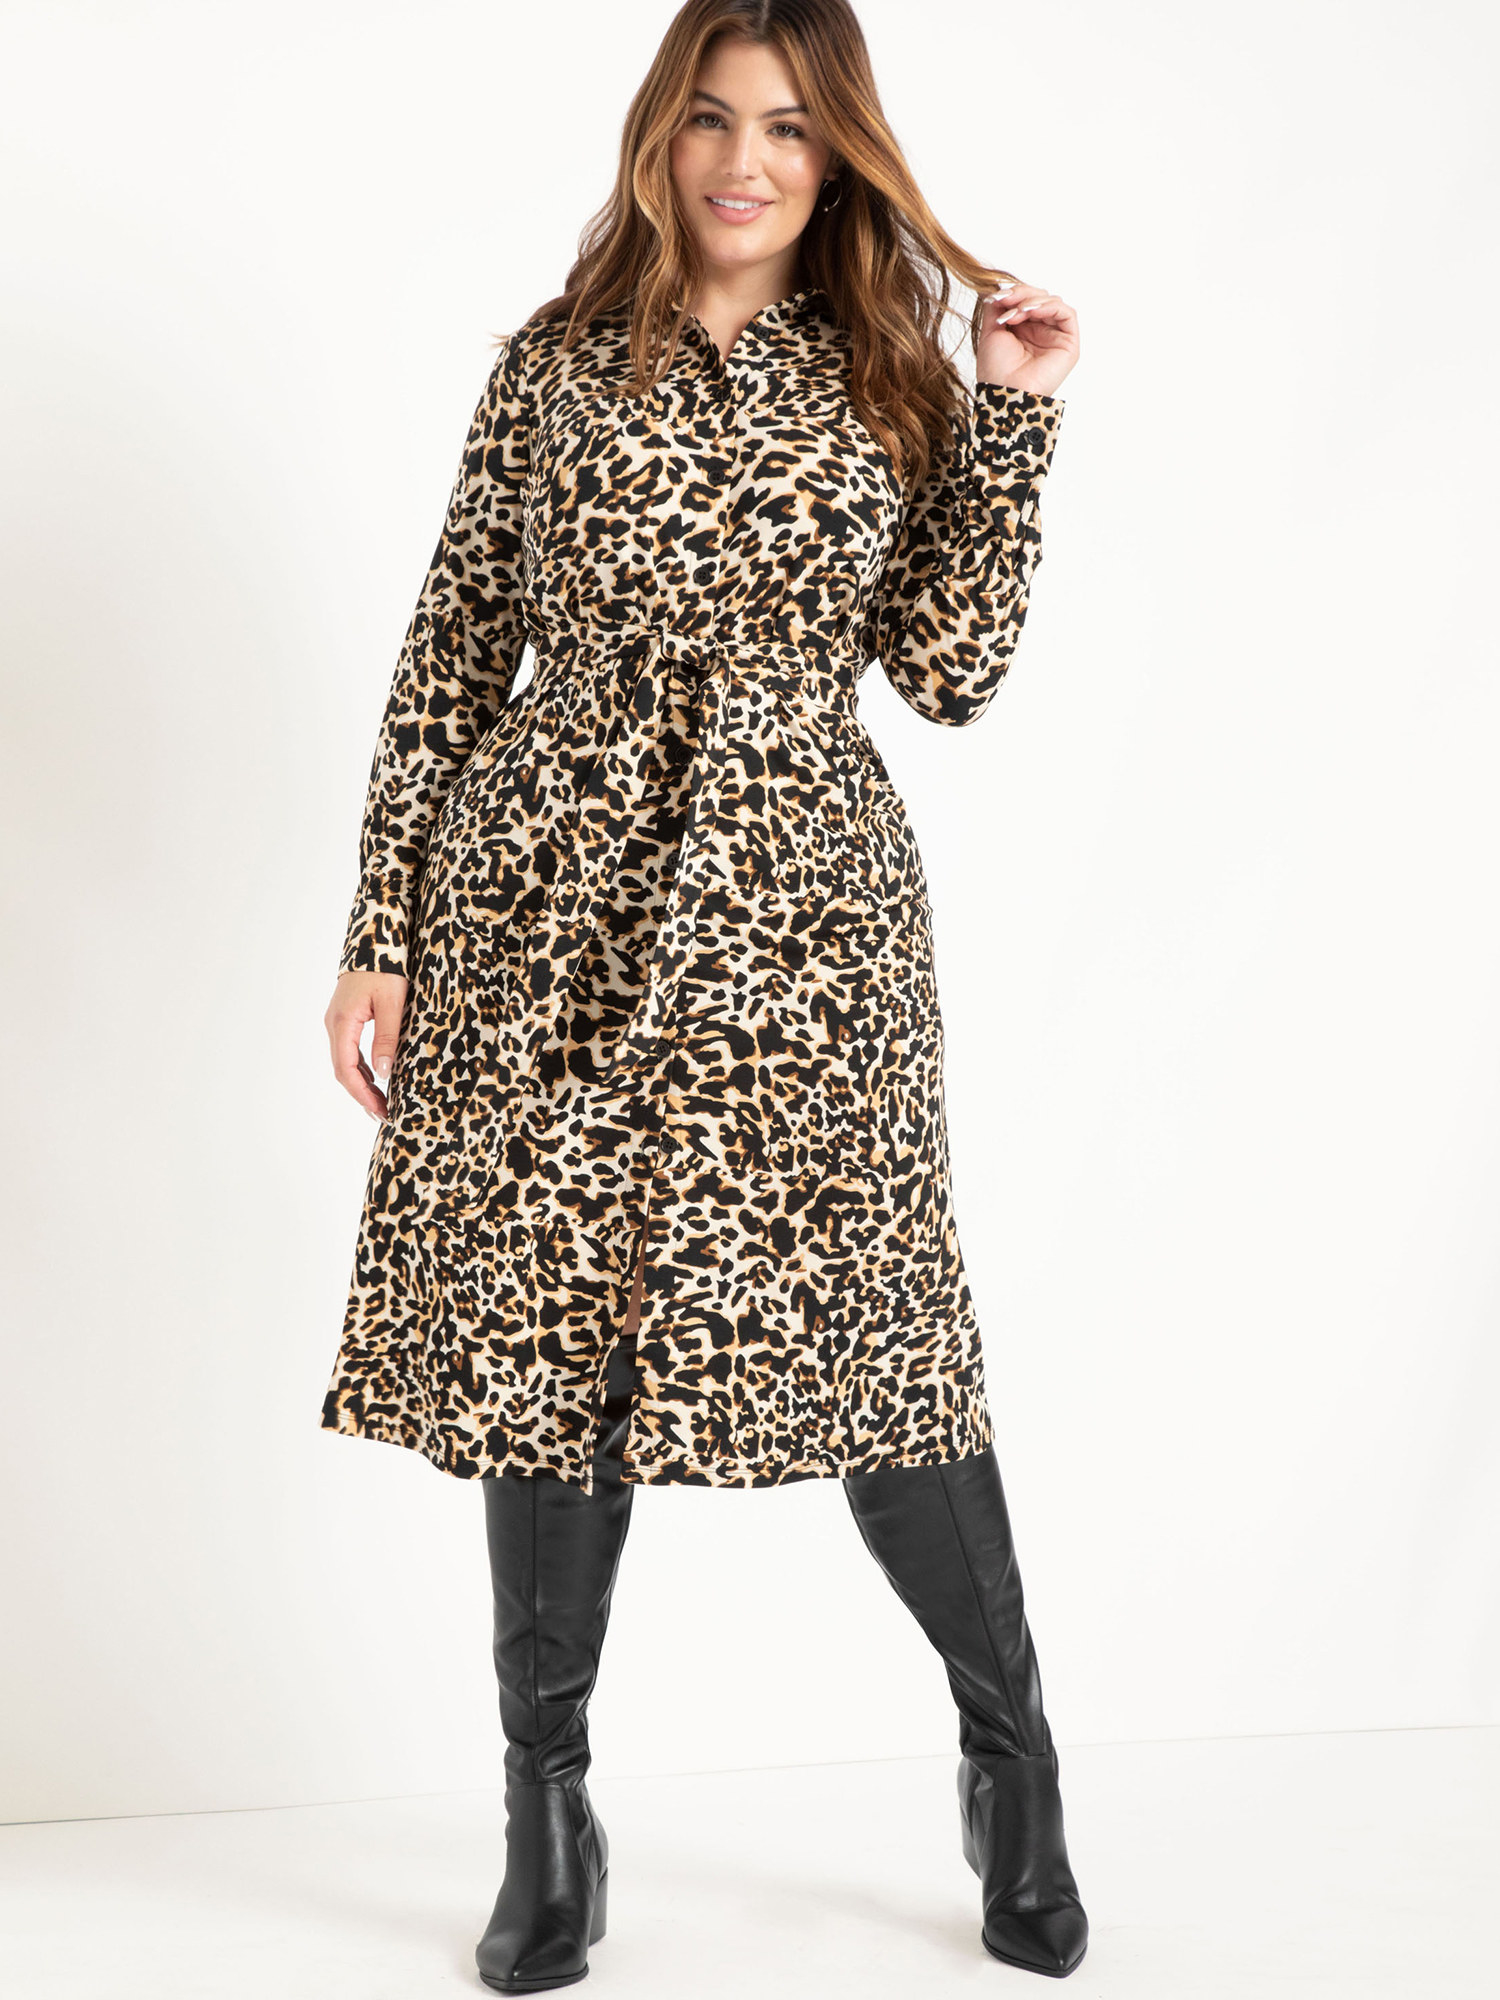 The leopard print shirt dress